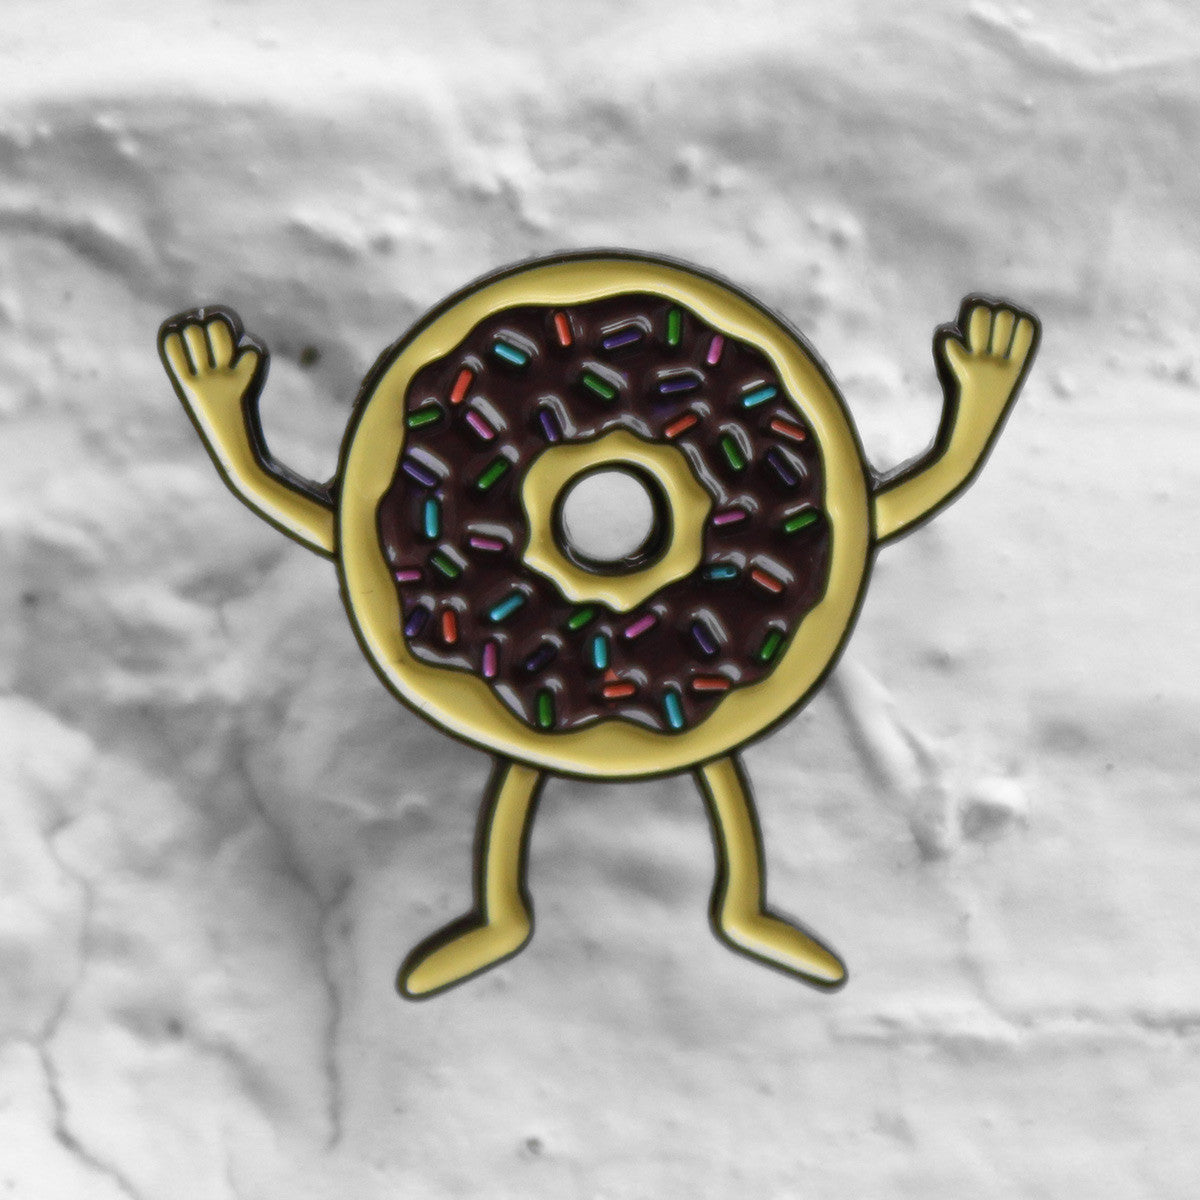 Valley Cruise Press Donuts Pin Badge